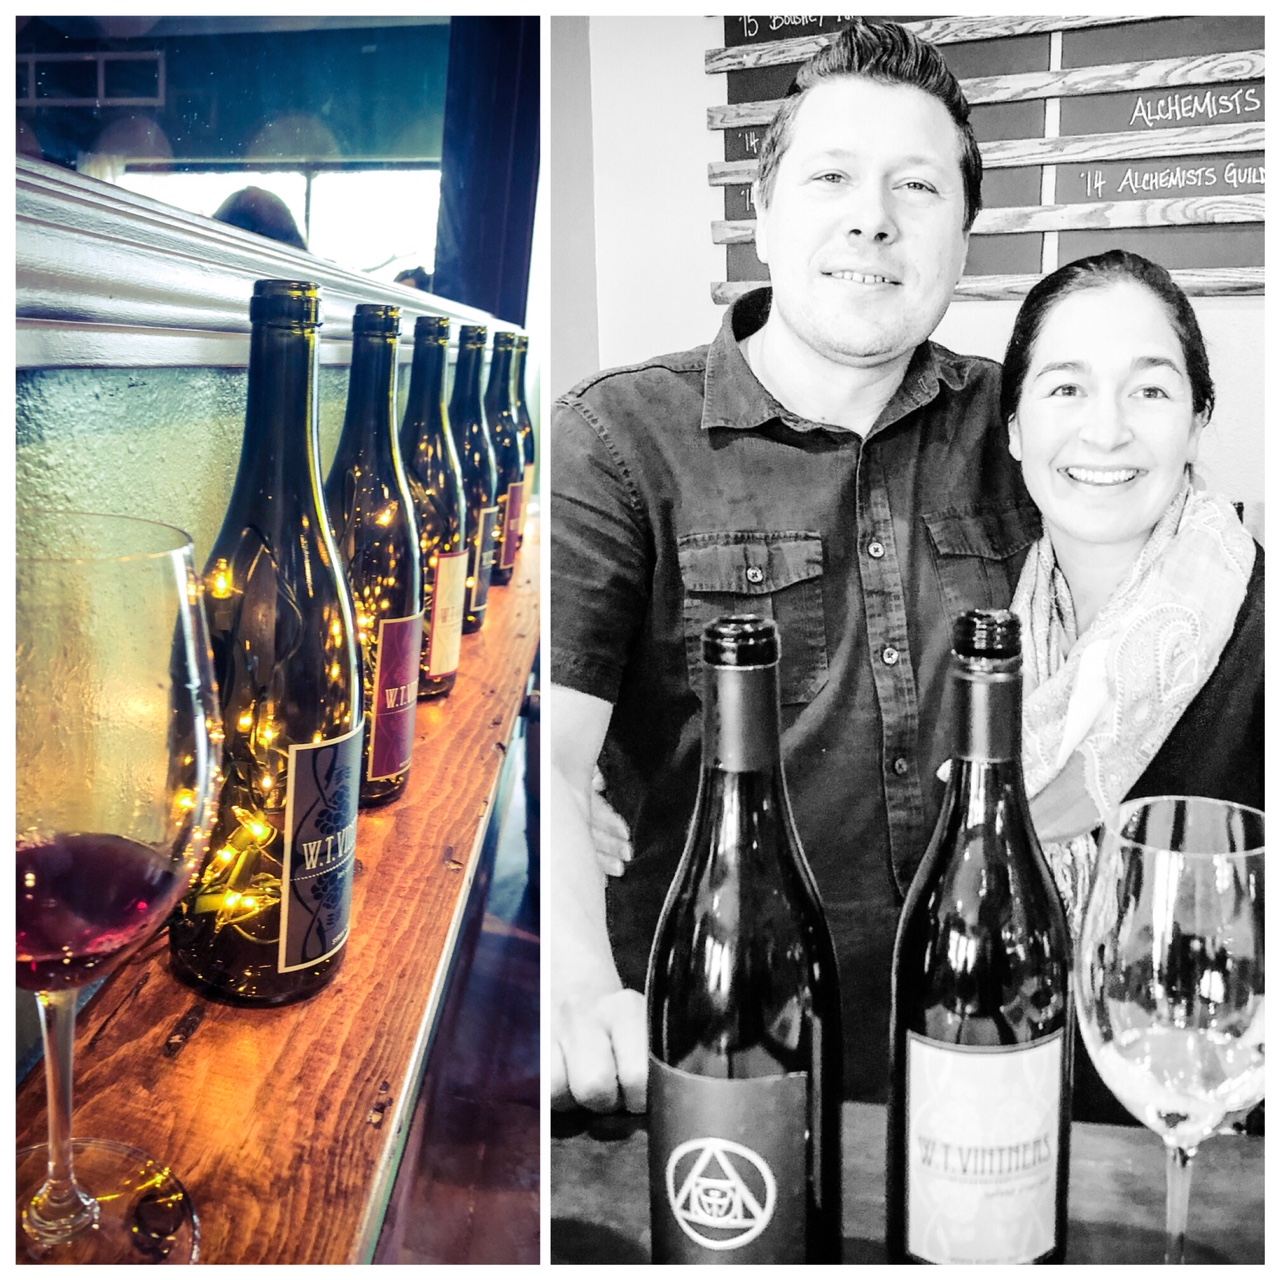 It was a marvelous time visiting one of the great talents in Washington wine, Jeff Lindsay-Thorsen, for the W.T. Vintners spring release event.